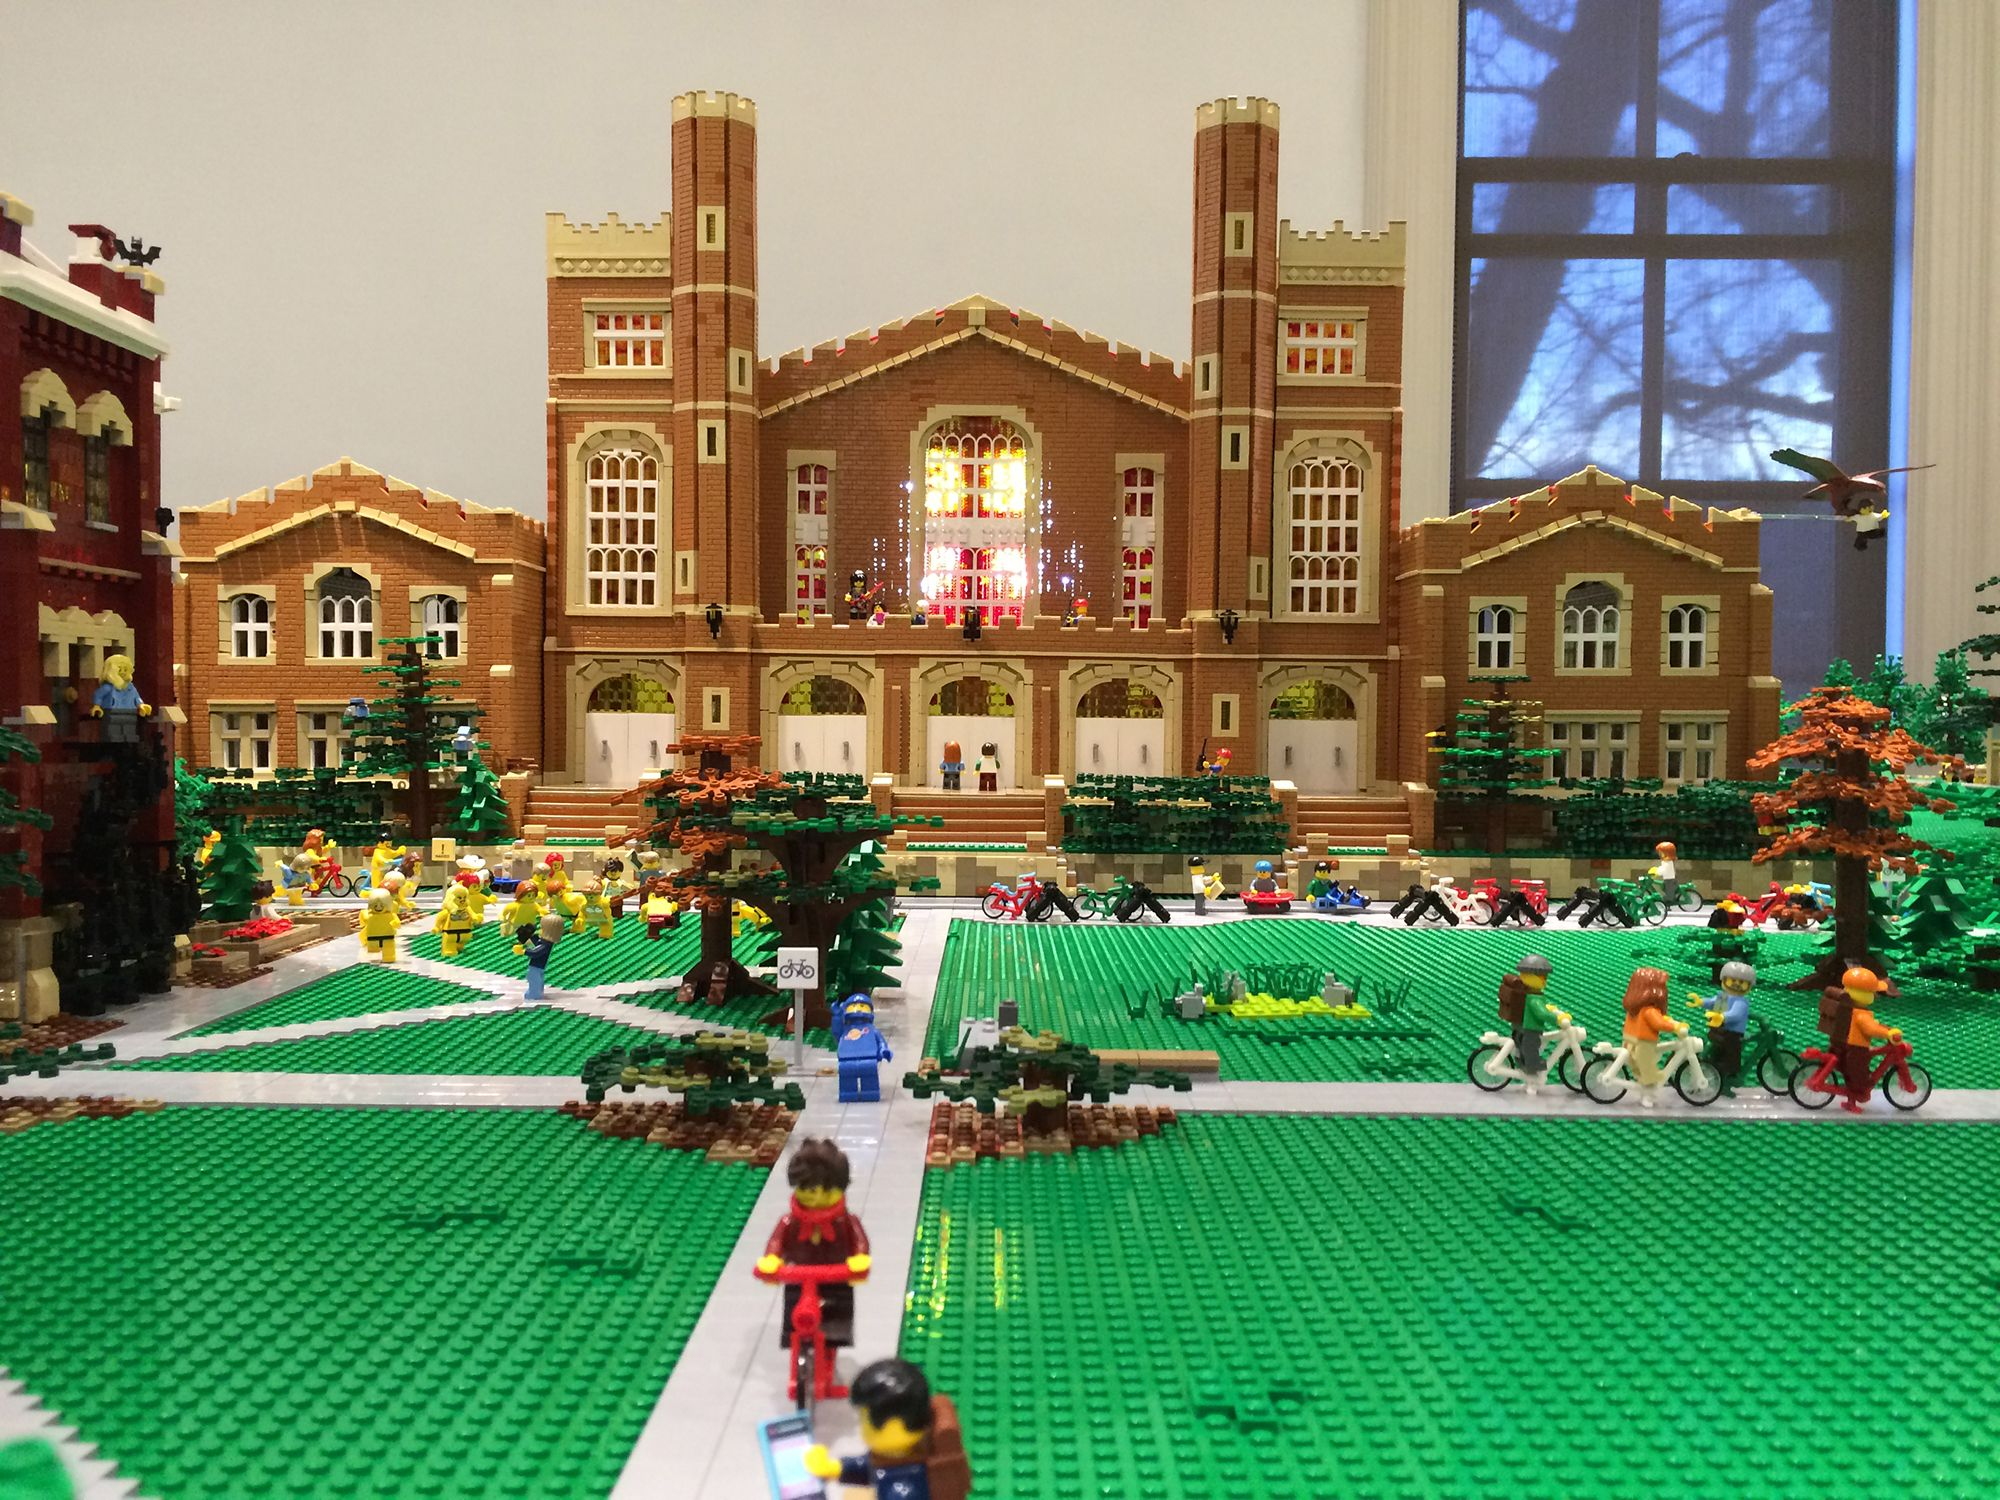 Macky Auditorium and the Norlin Quad made entirely of Legos as part of the CU Heritage Center Lego Exhibit.